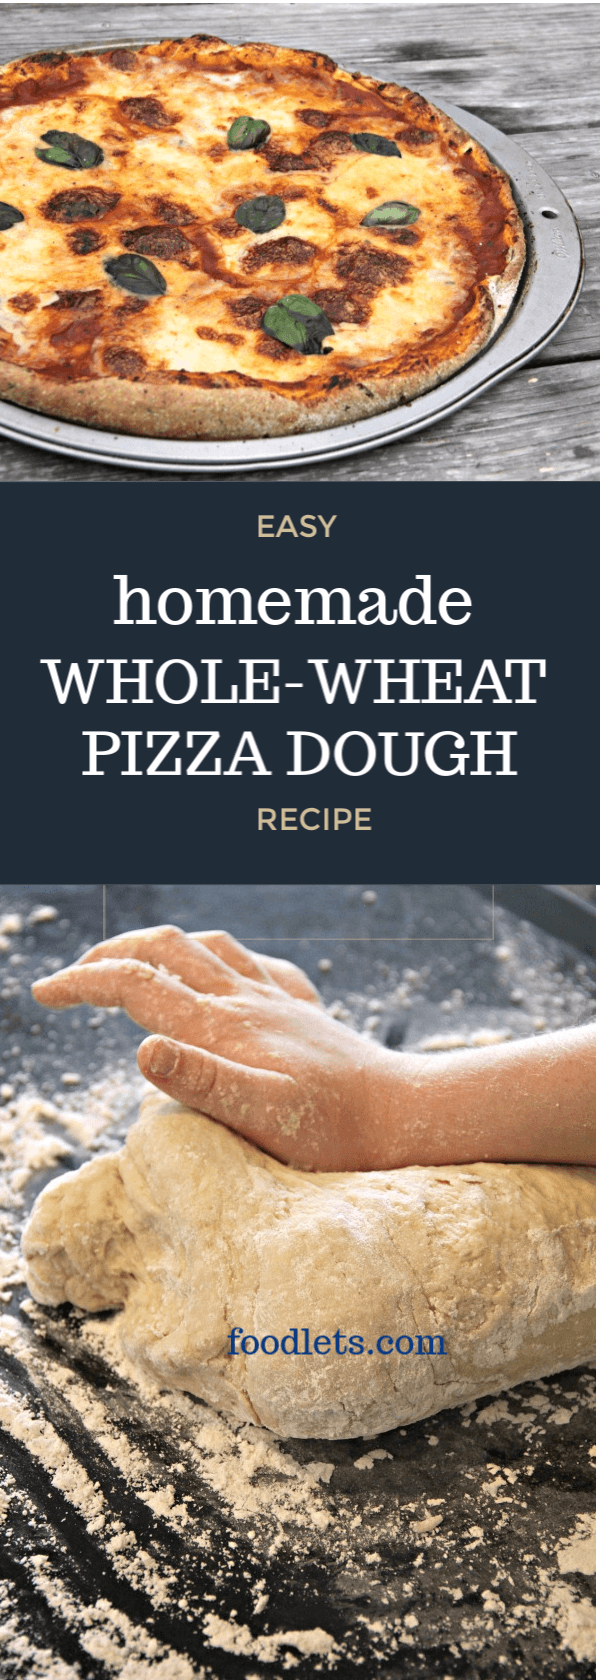 Easy Homemade Whole-Wheat Pizza Dough | Foodlets #pizzateig